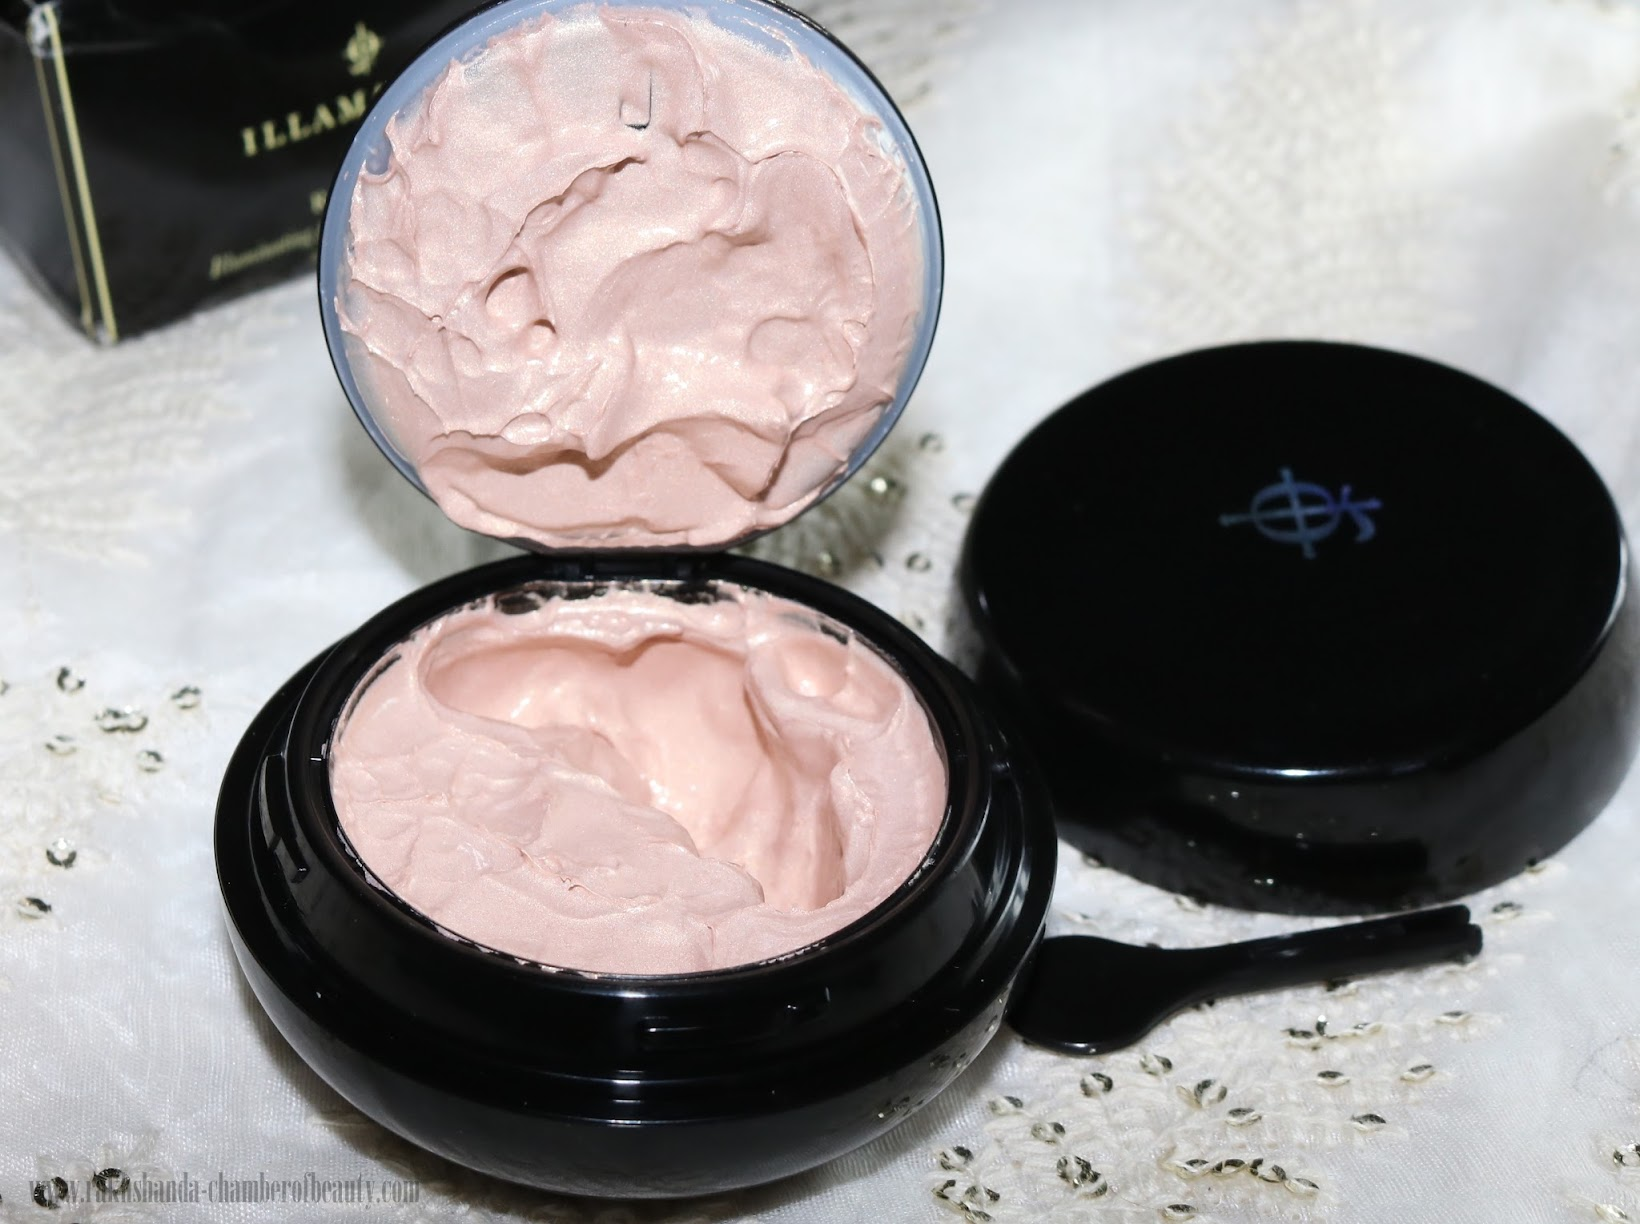 Illamasqua, Illamasqua Radiance Veil, beauty, makeup, primer, highlighter, best illuminator for natural radiance, Illamasqua Radiance Veil review, Indian beauty blogger, how to use Illamsqua radiance veil, Chamber Of Beauty, Indian makeup blog, radiance veil review and swatches, beauty and makeup